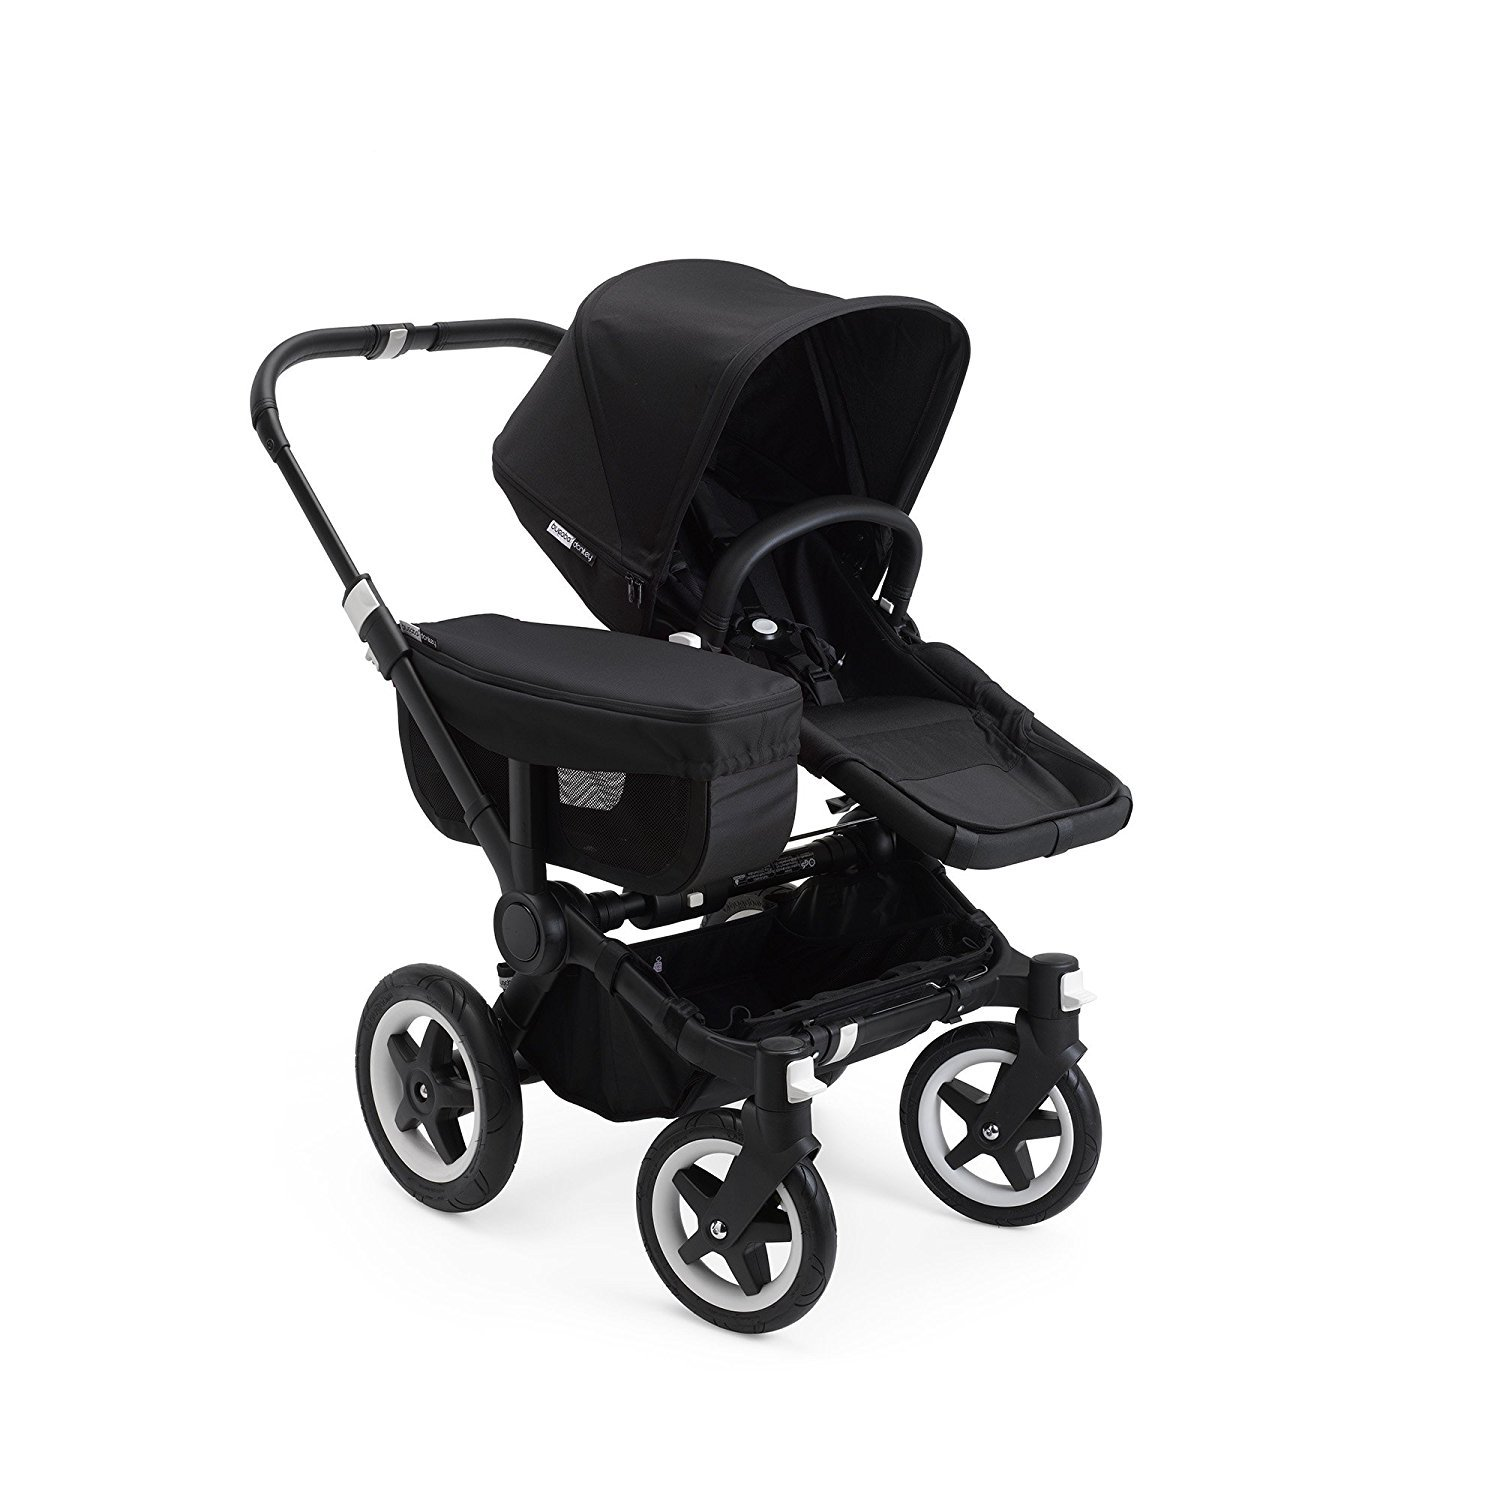 Bugaboo Donkey2 Complete Mono Stroller, the Most Spacious Foldable Stroller with the Option to Expand to a Double (Black)